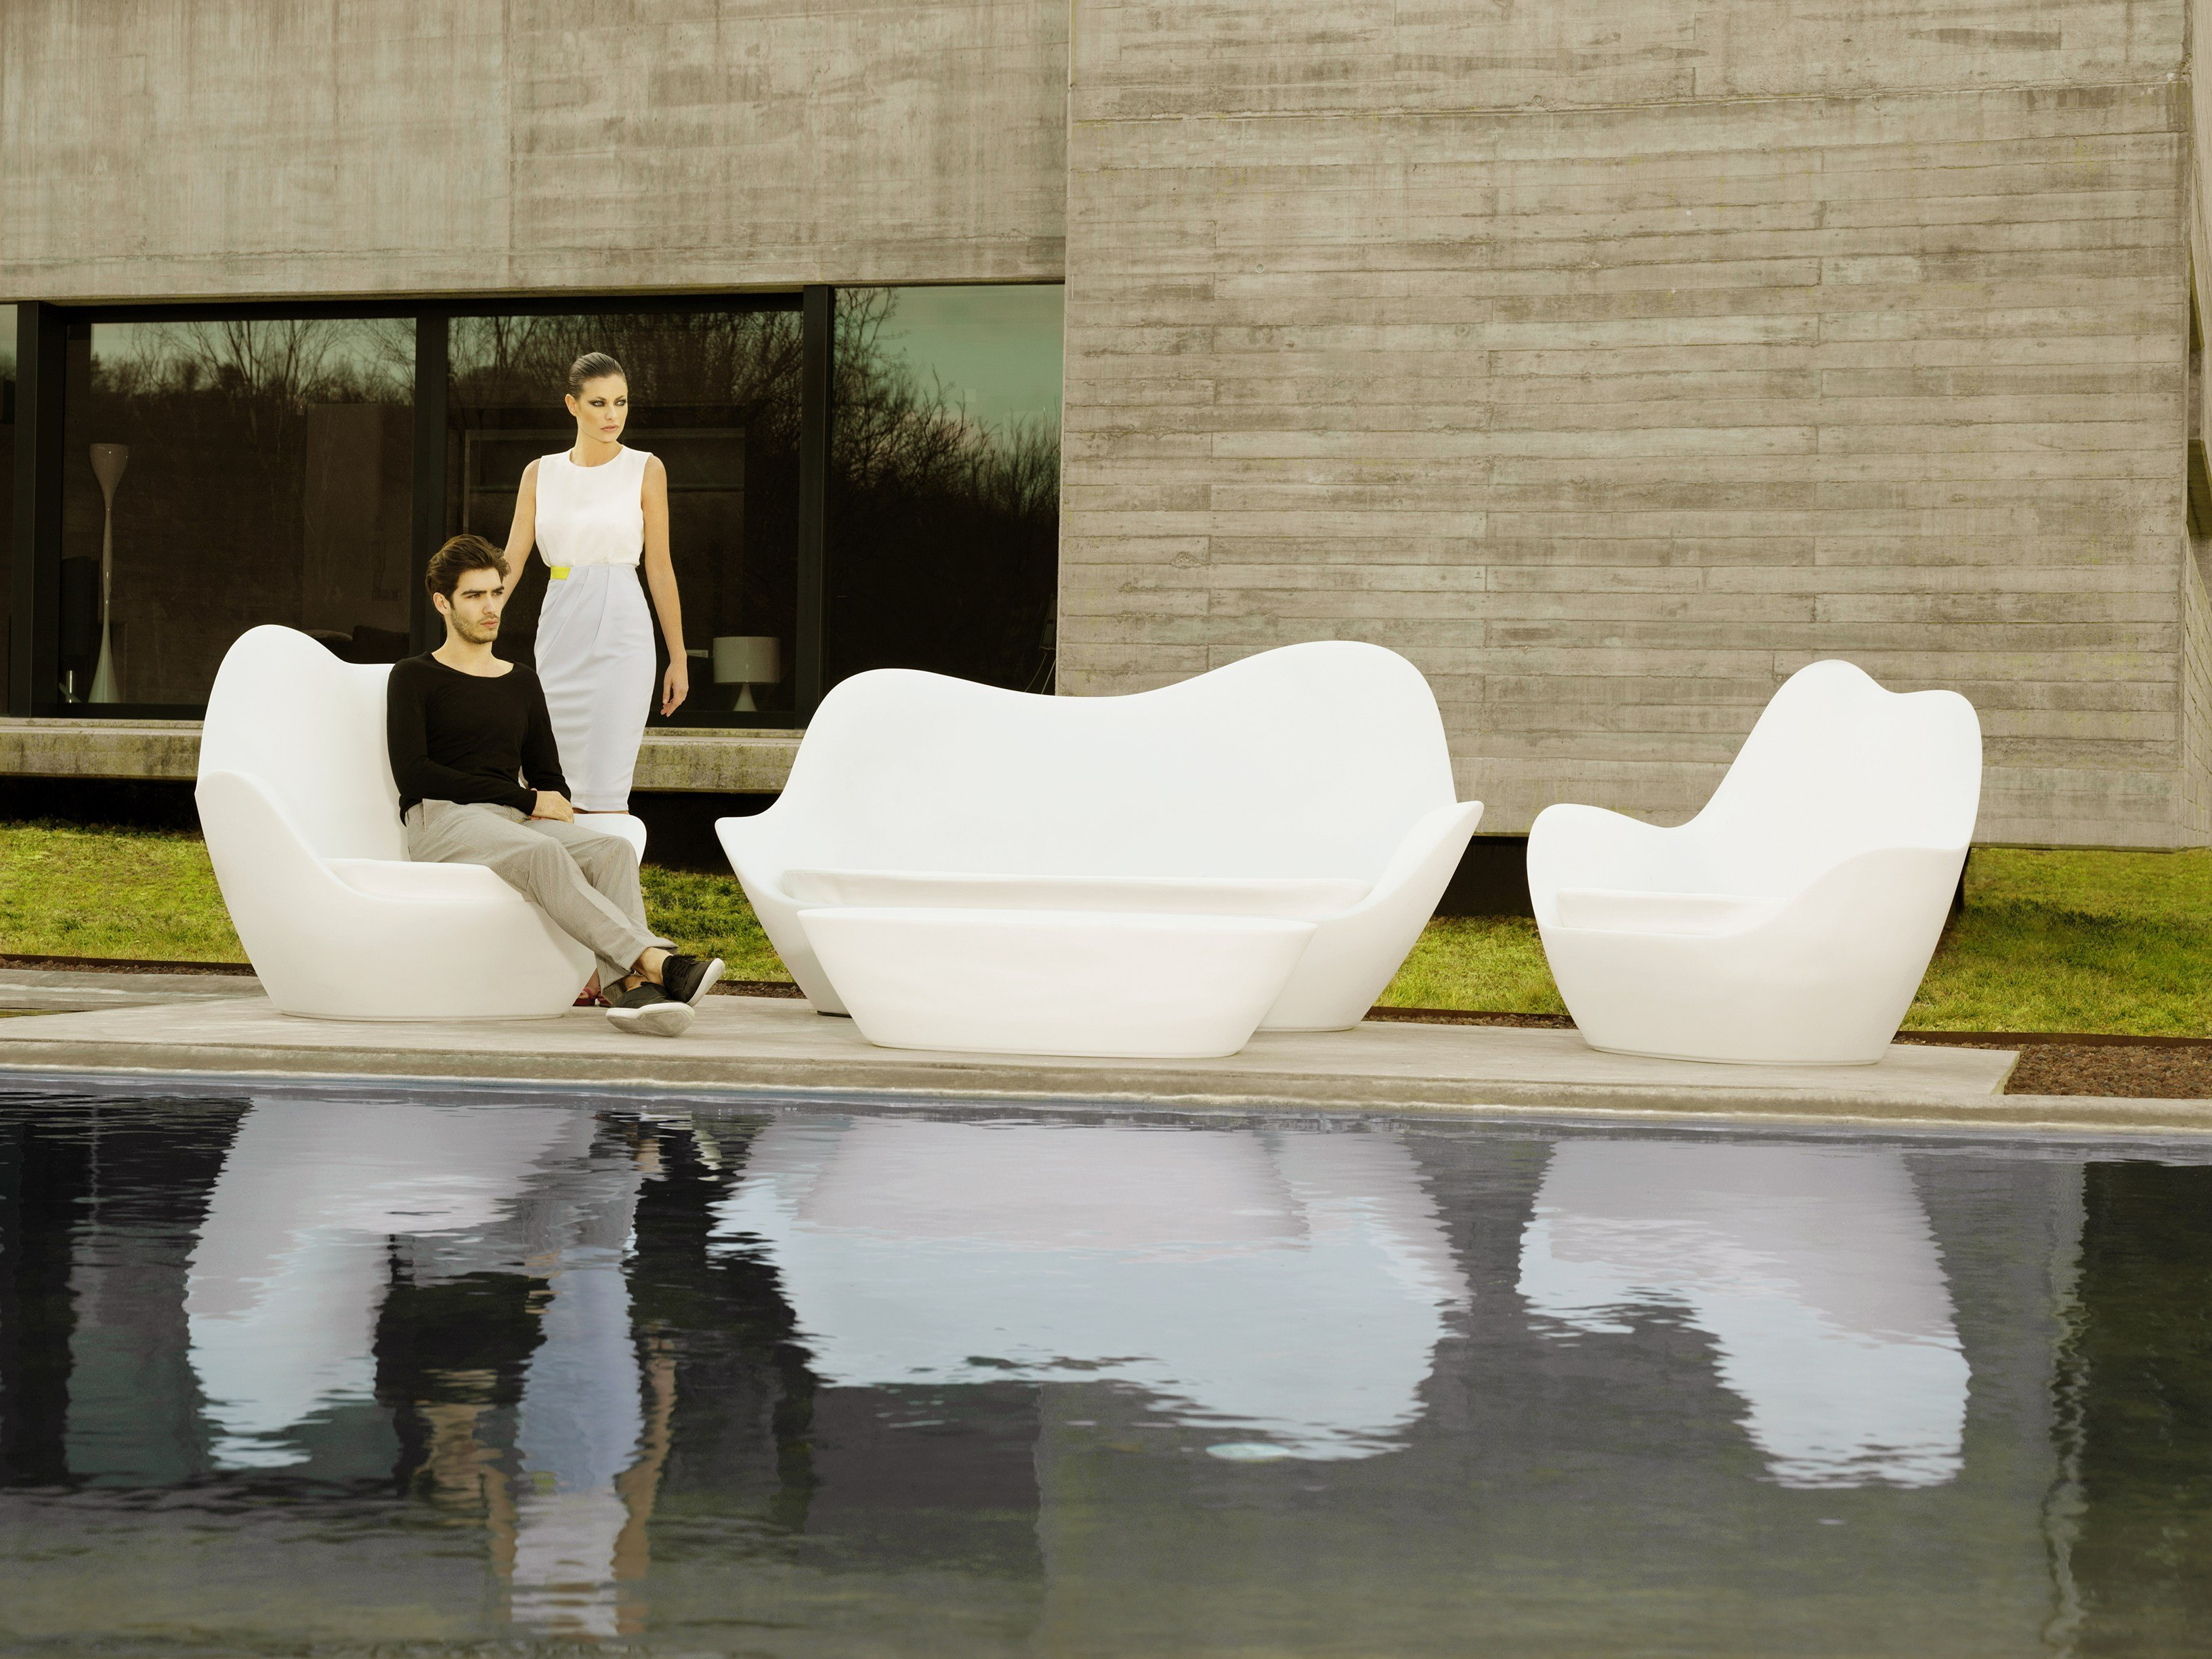 sabinas garden sofa by vondom design javier mariscal. Black Bedroom Furniture Sets. Home Design Ideas